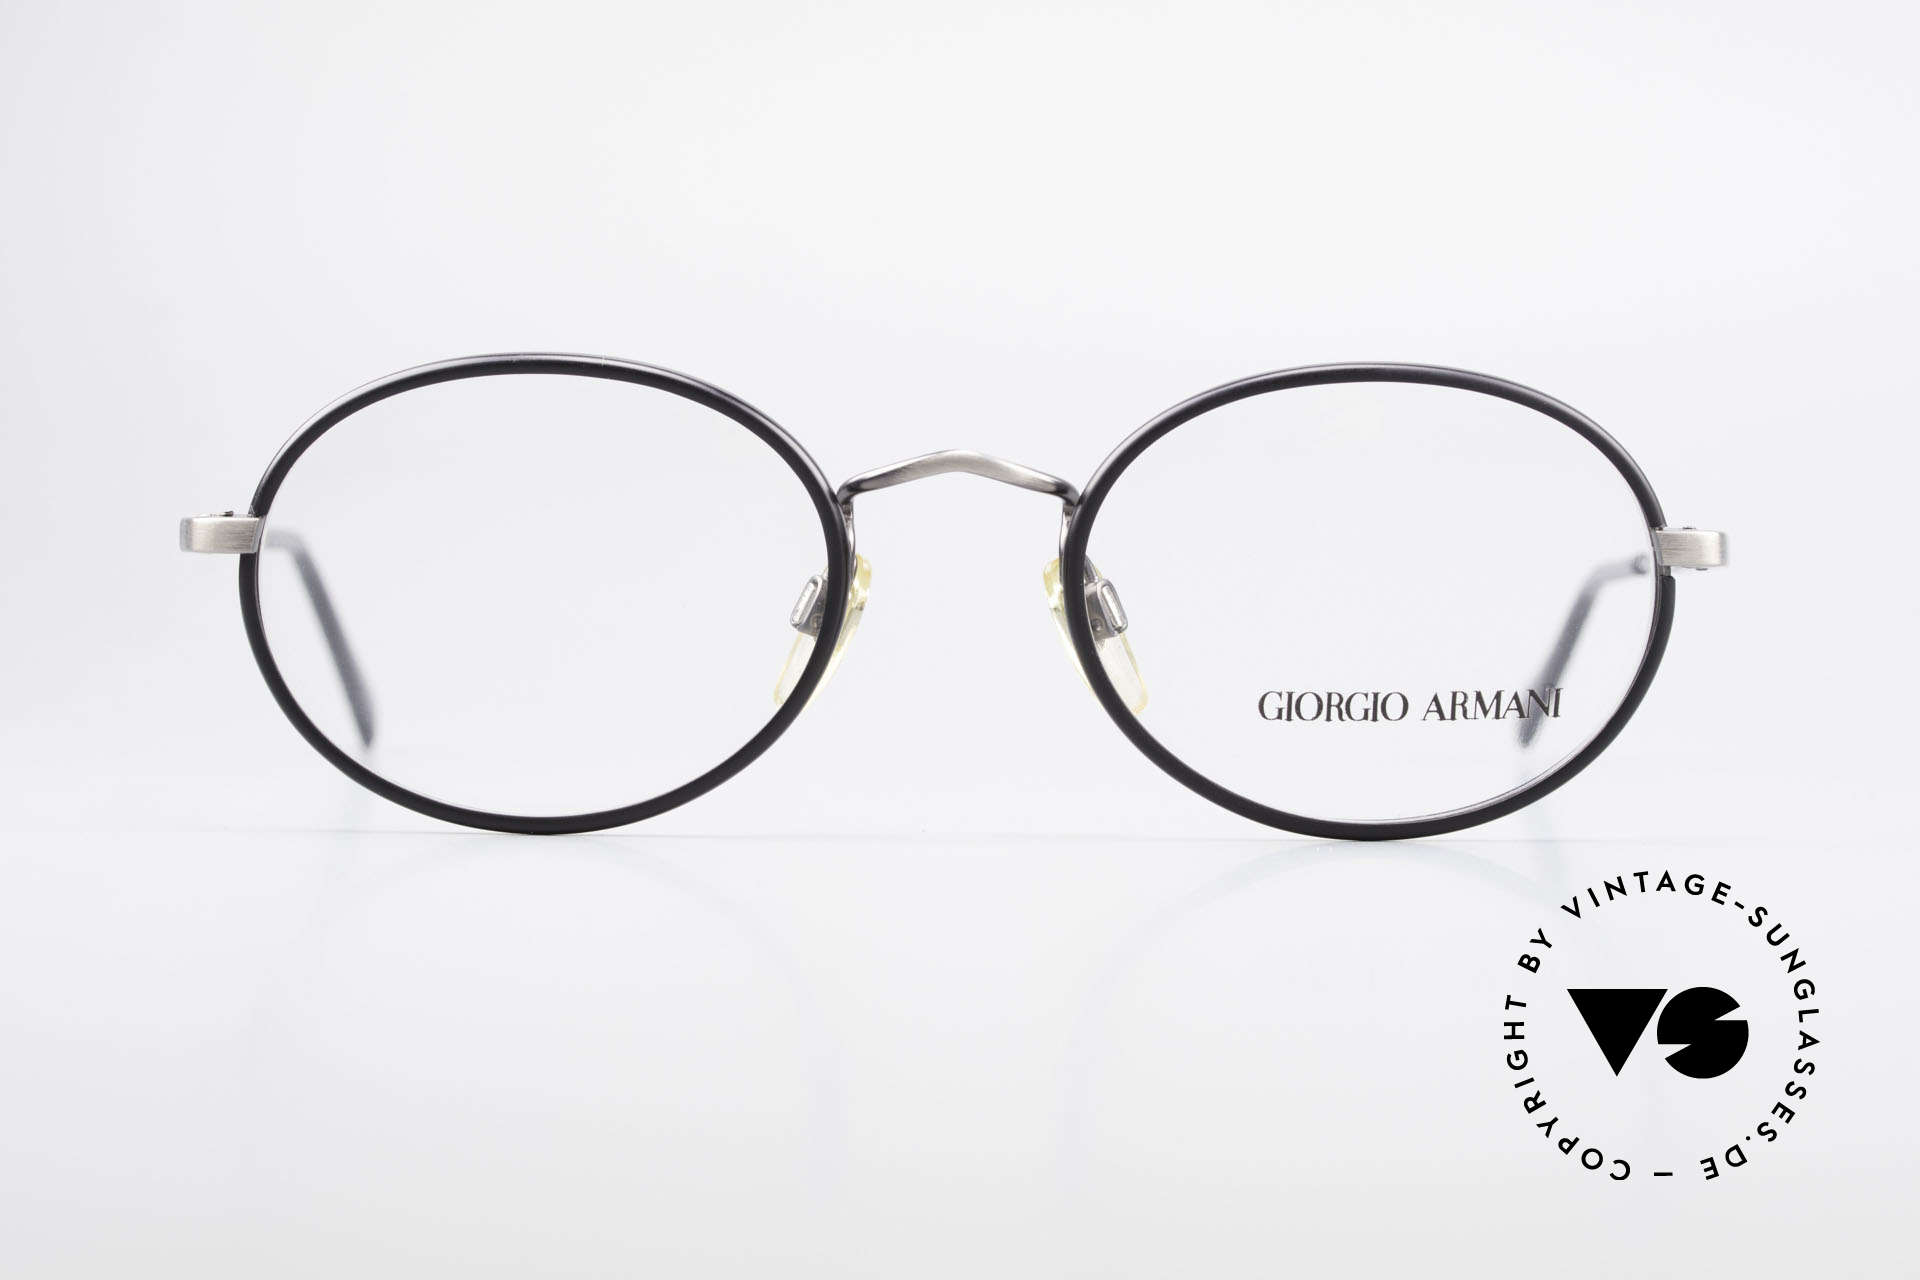 Giorgio Armani 235 Oval Vintage 80's Eyeglasses, a true classic in design & coloring (timeless elegant), Made for Men and Women